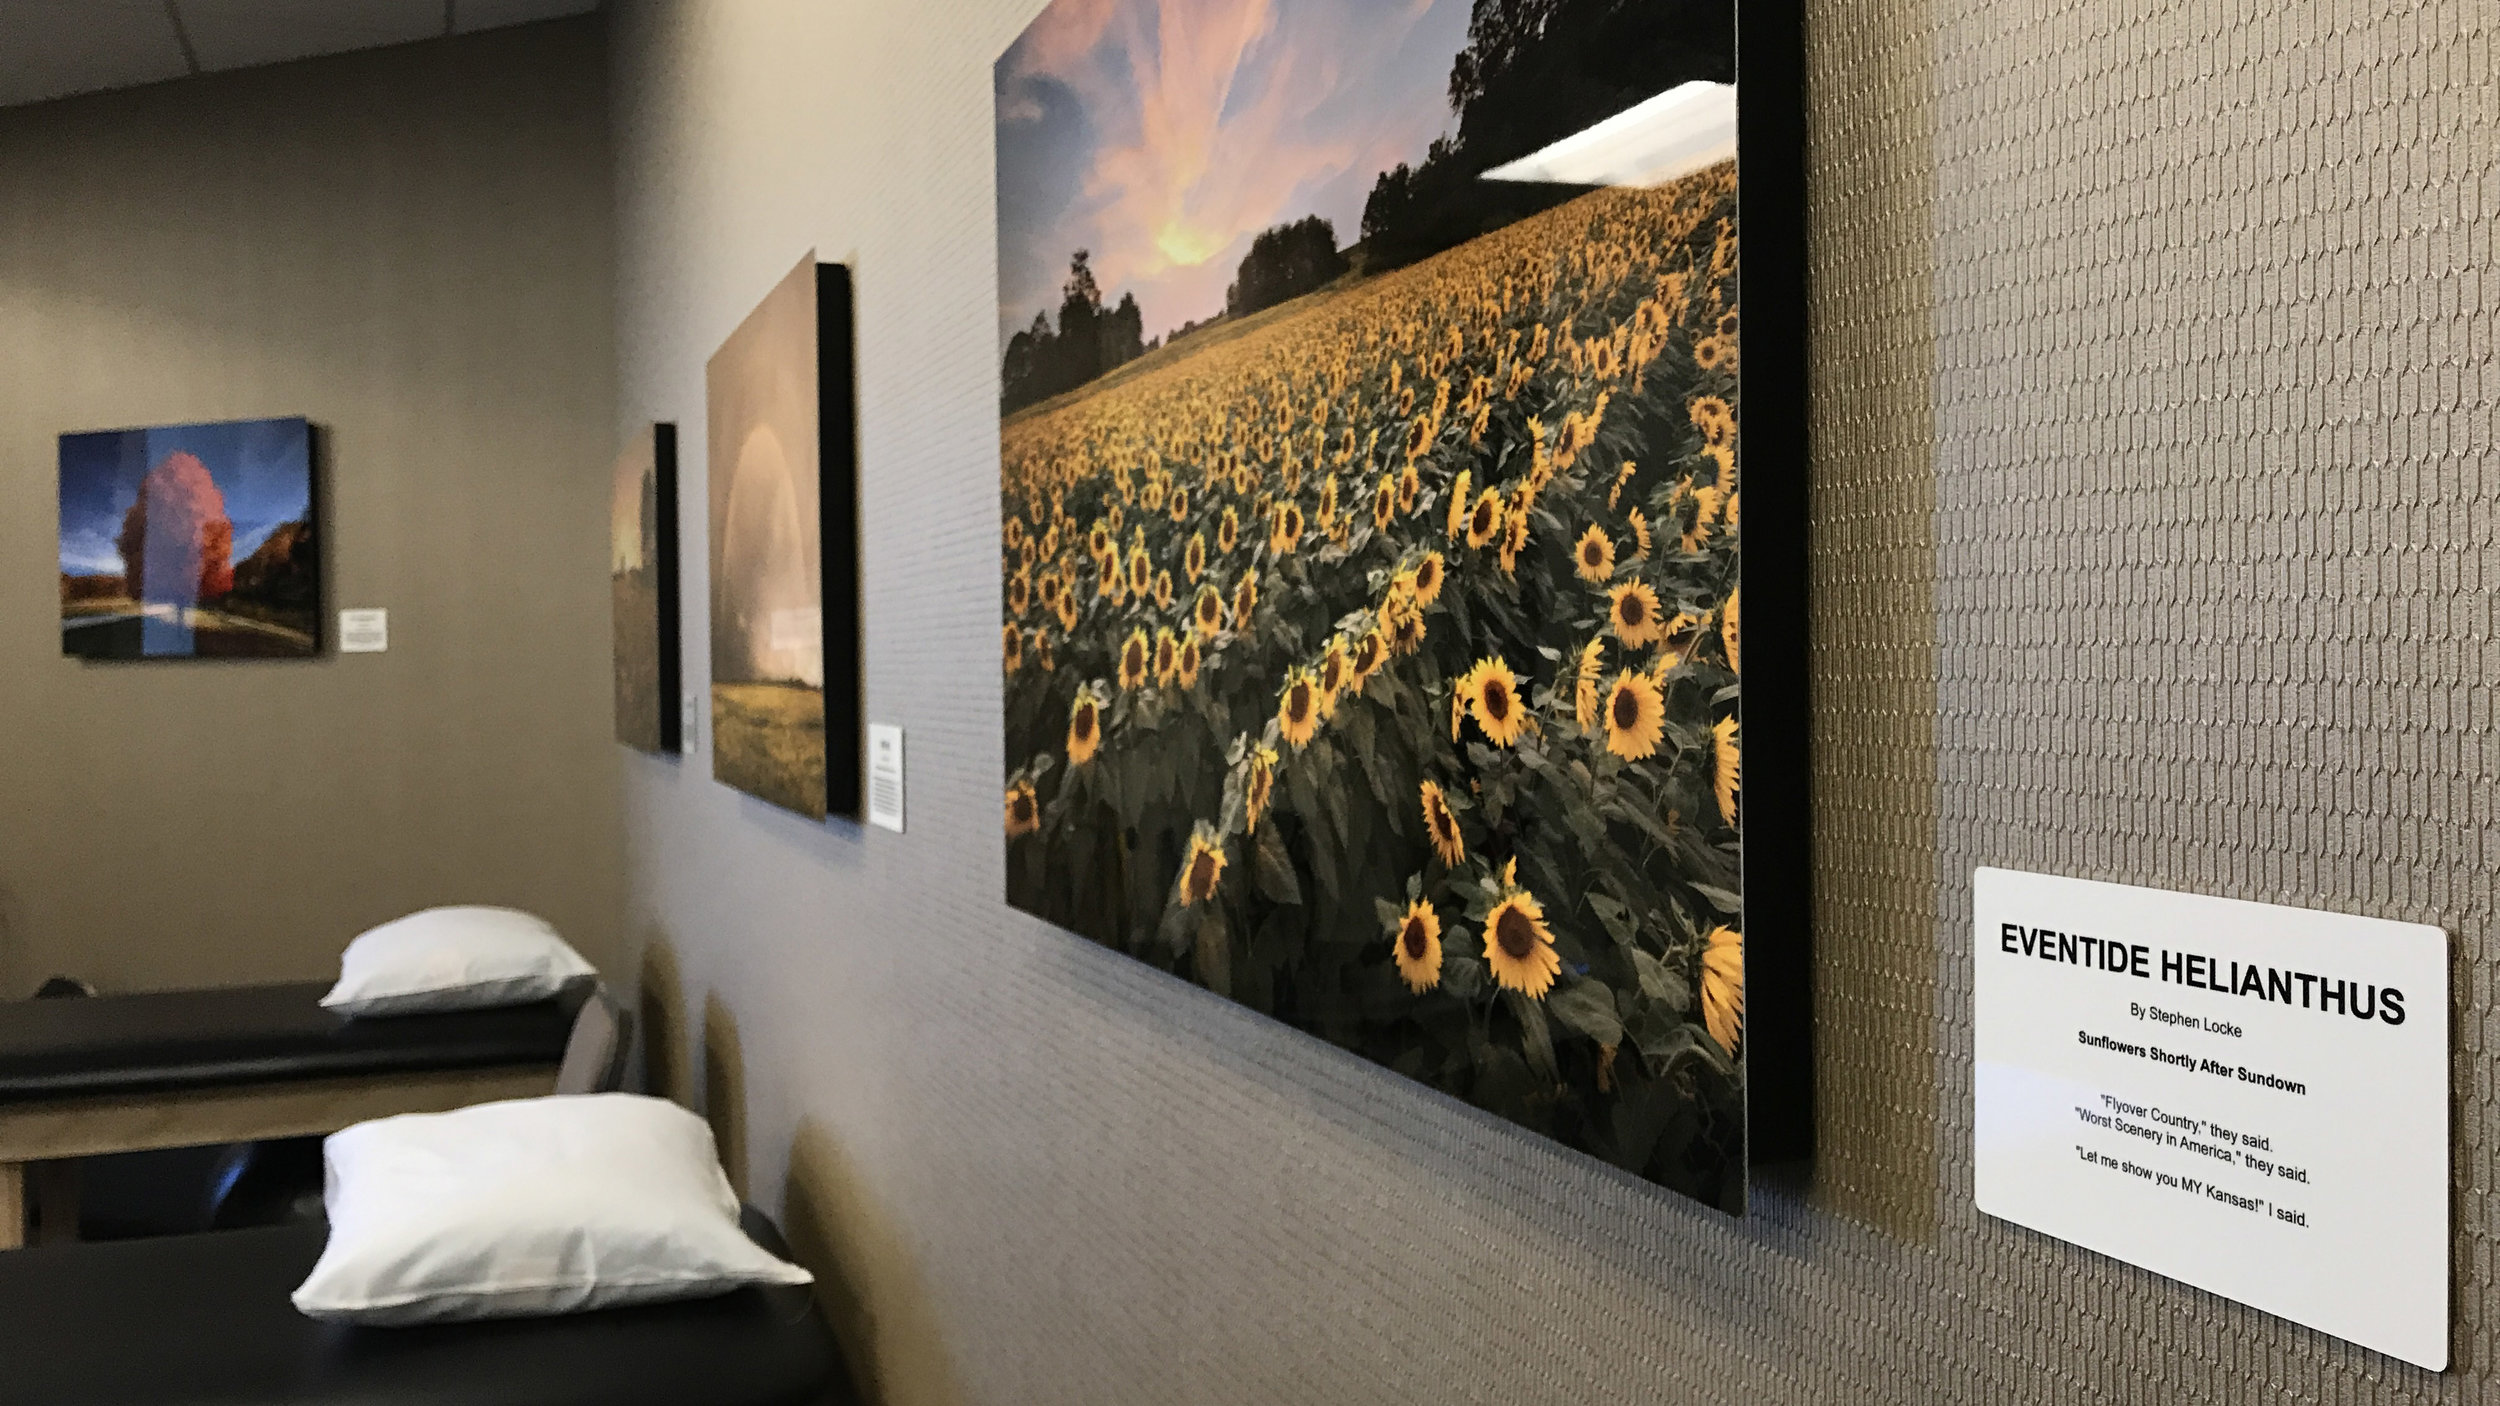 Eventide Helianthus in situ at KCB 24 x 36 on metal